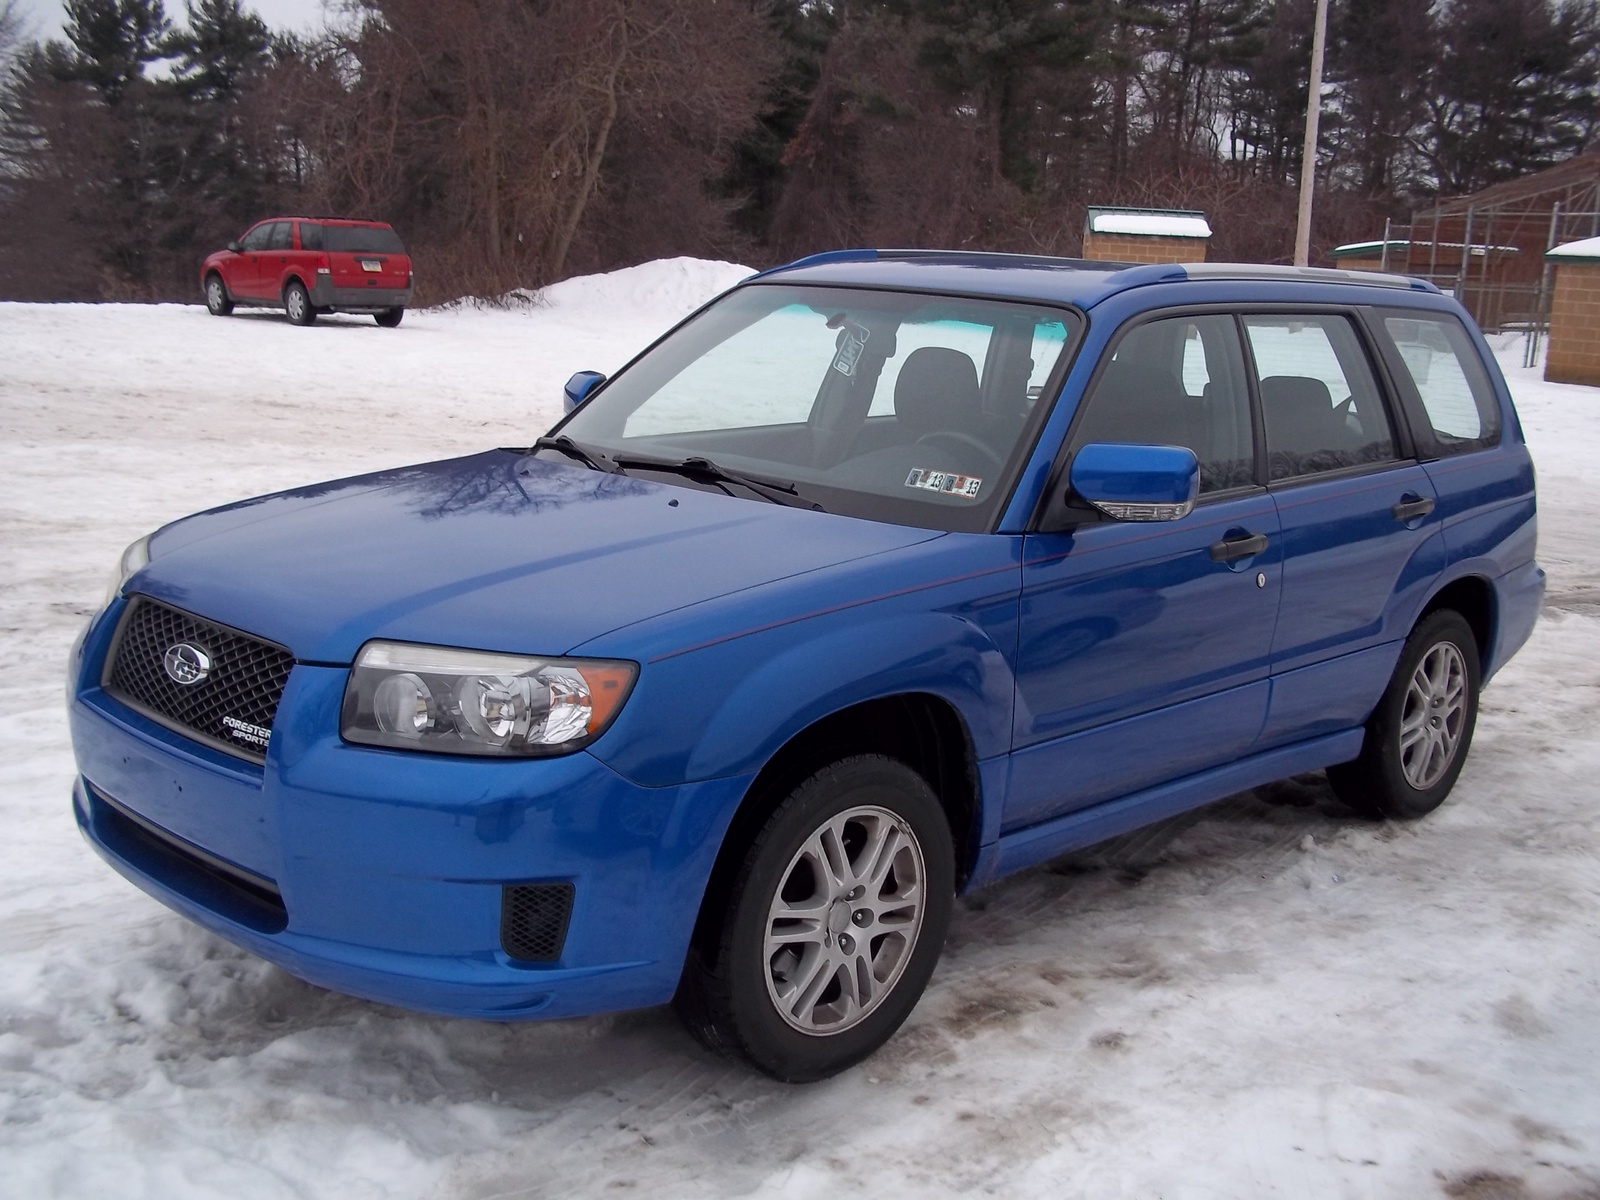 Picture of 2008 subaru forester sports 2 5x exterior